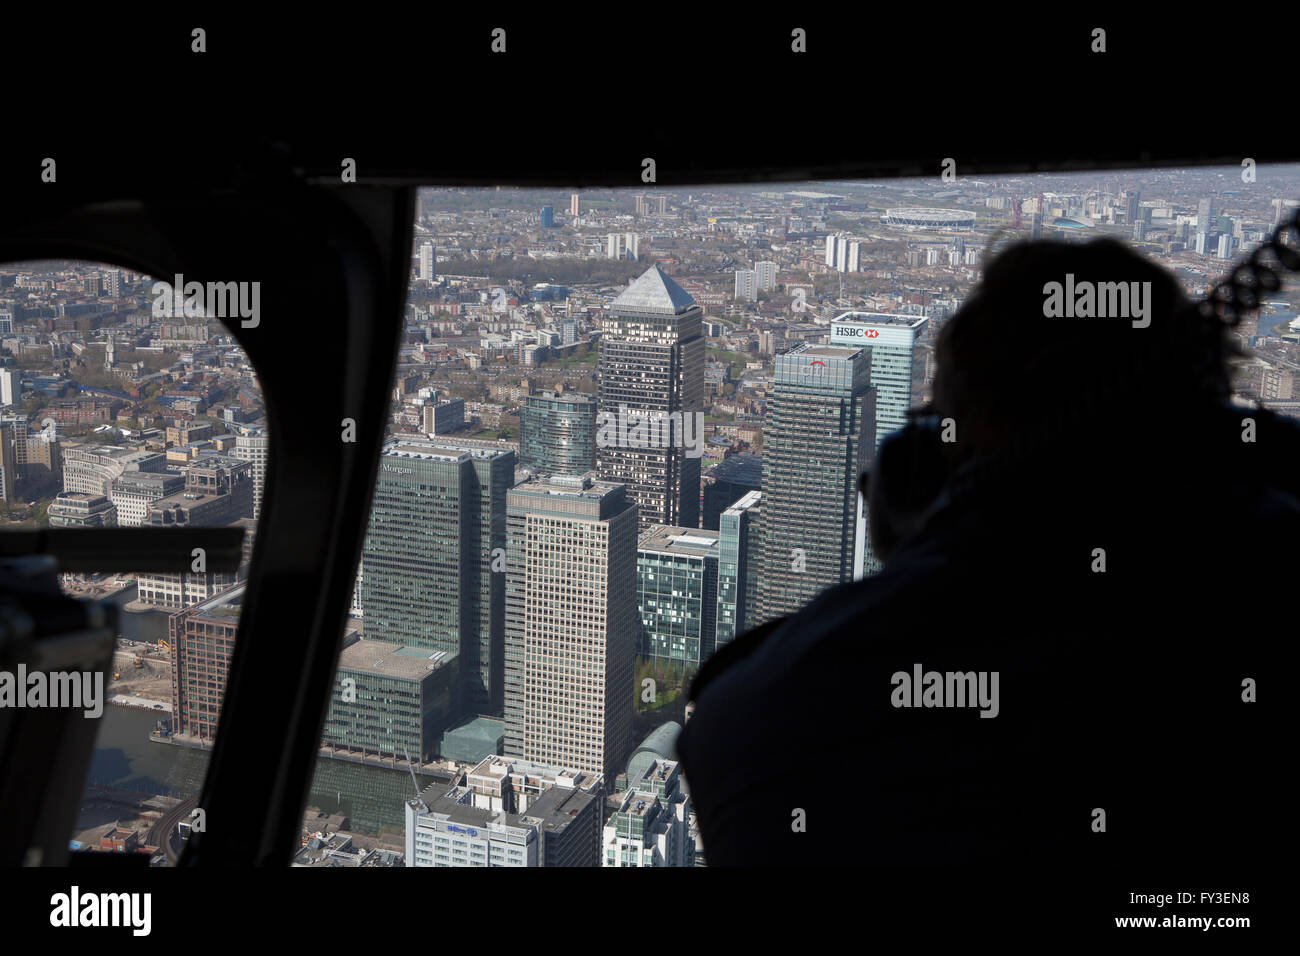 View from inside of Helicopter with door open over London during aerial photography trip - Stock Image